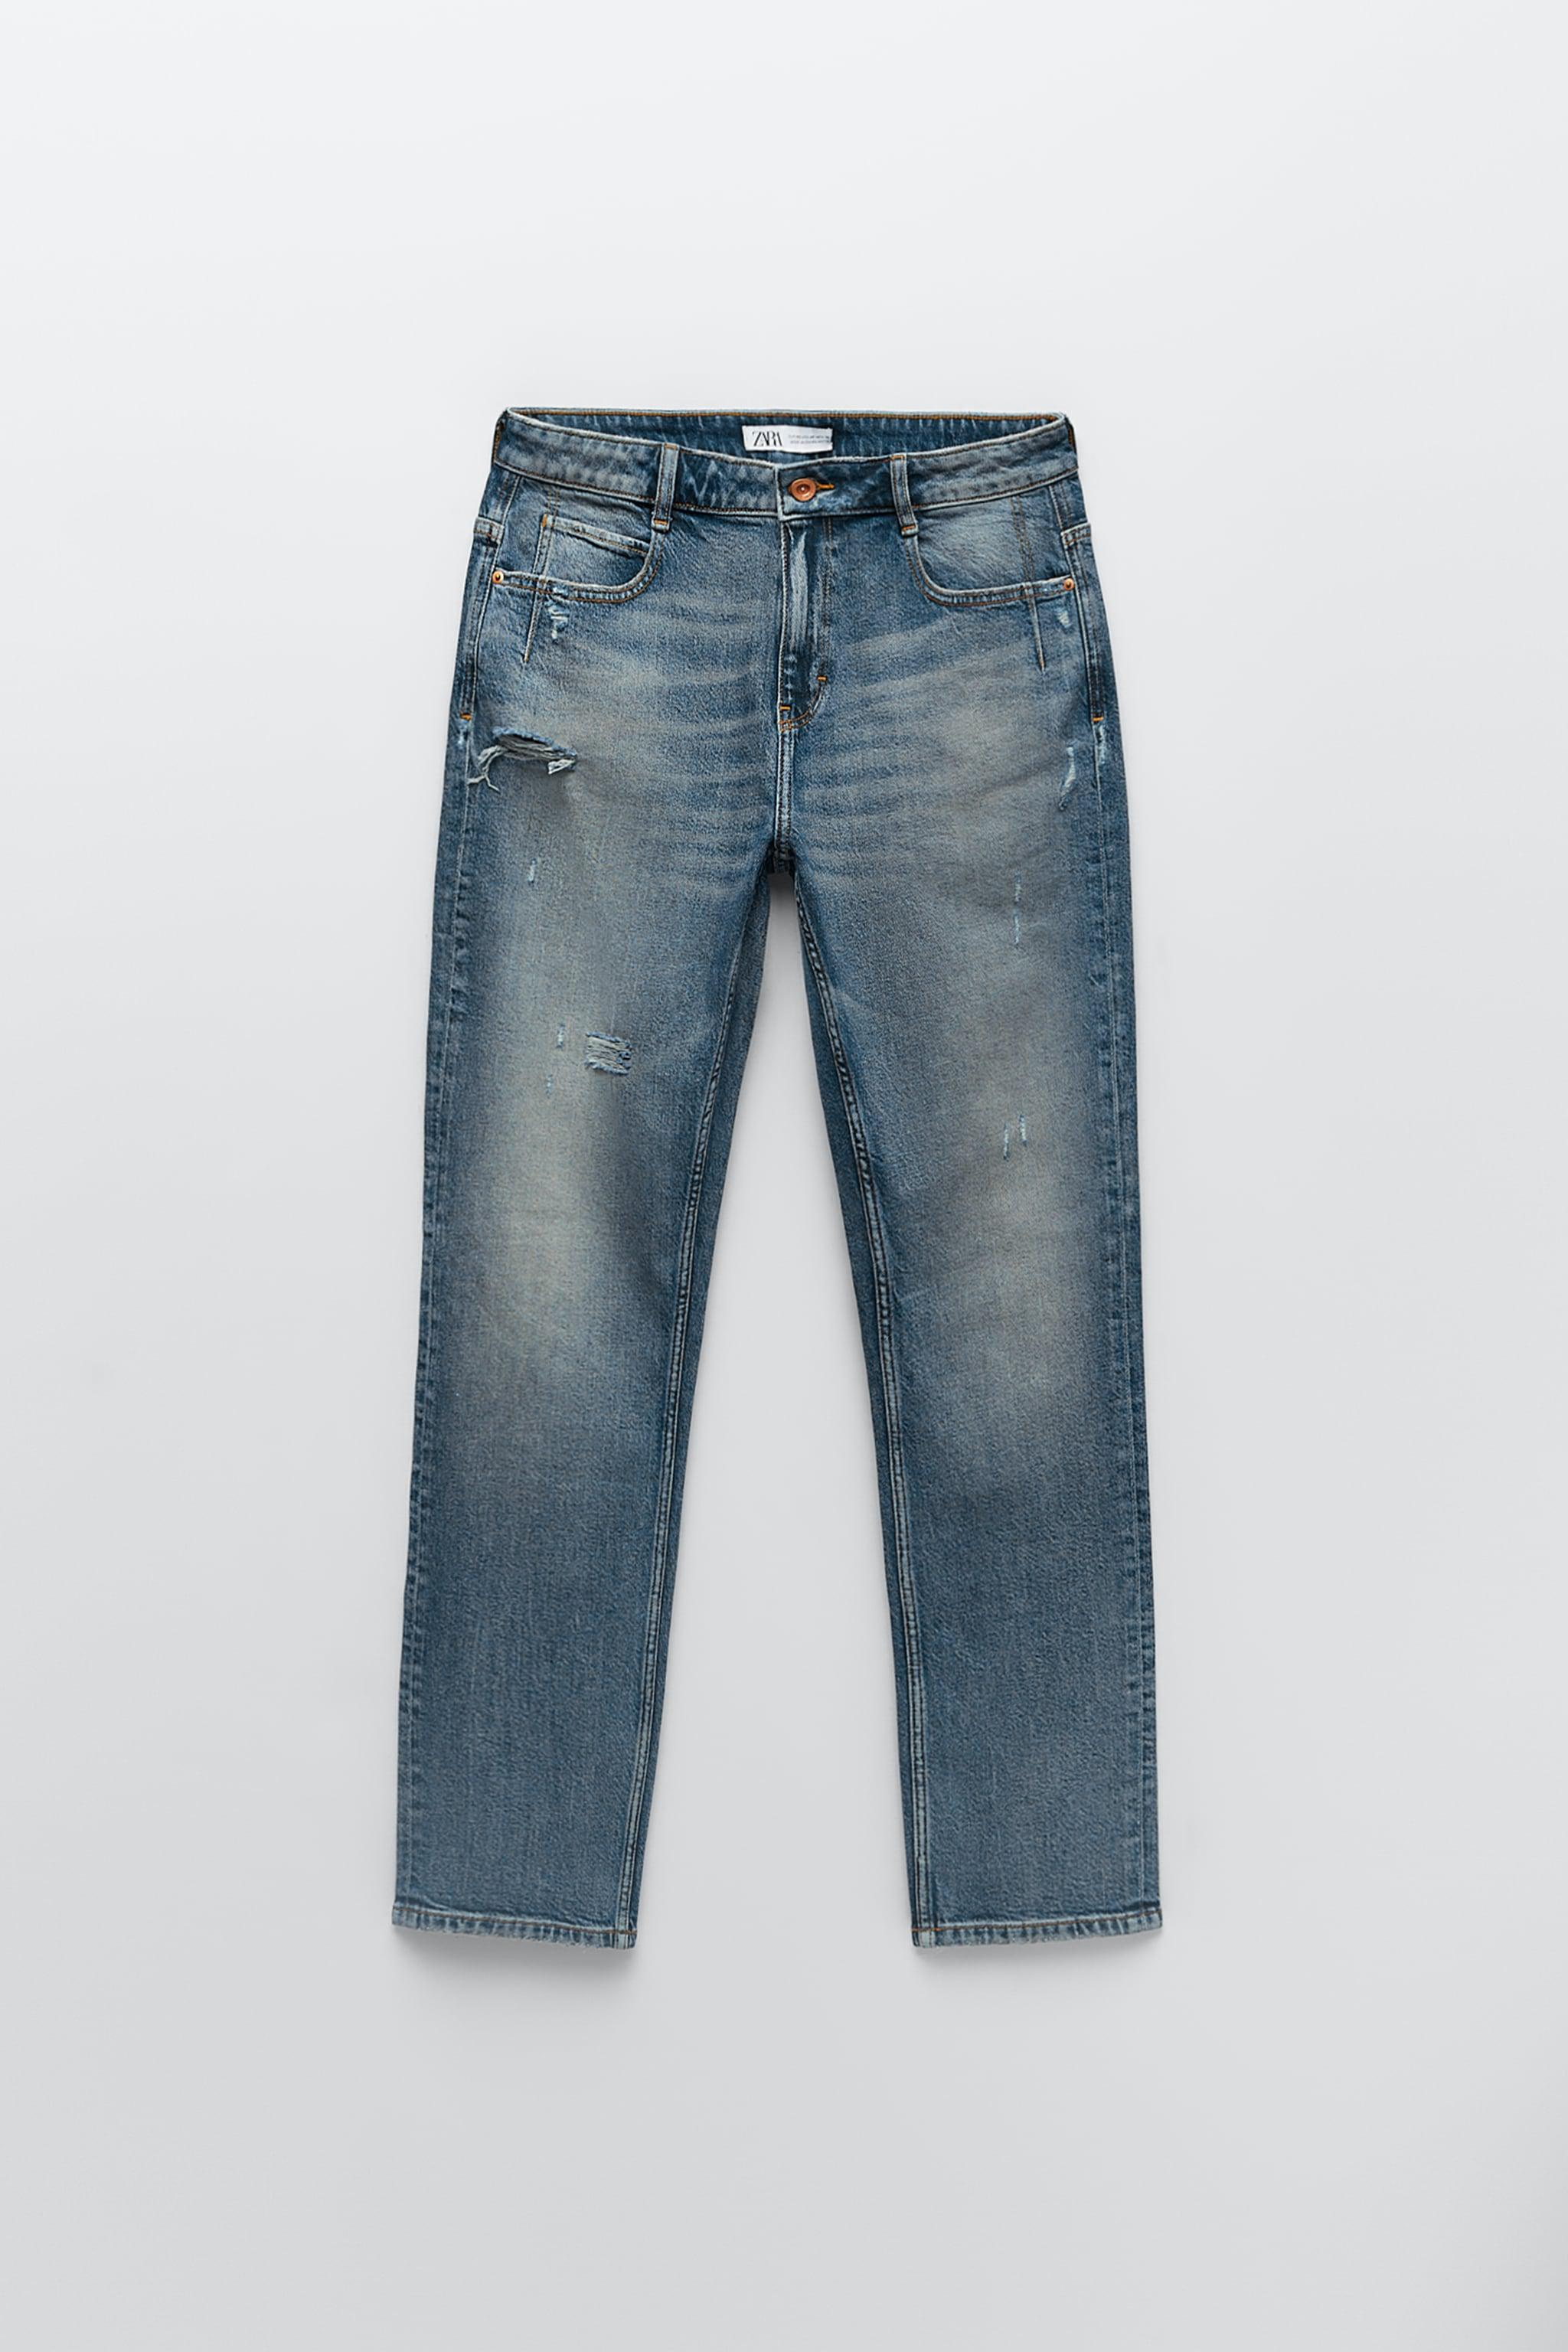 Z1975 RELAXED FIT JEANS 3